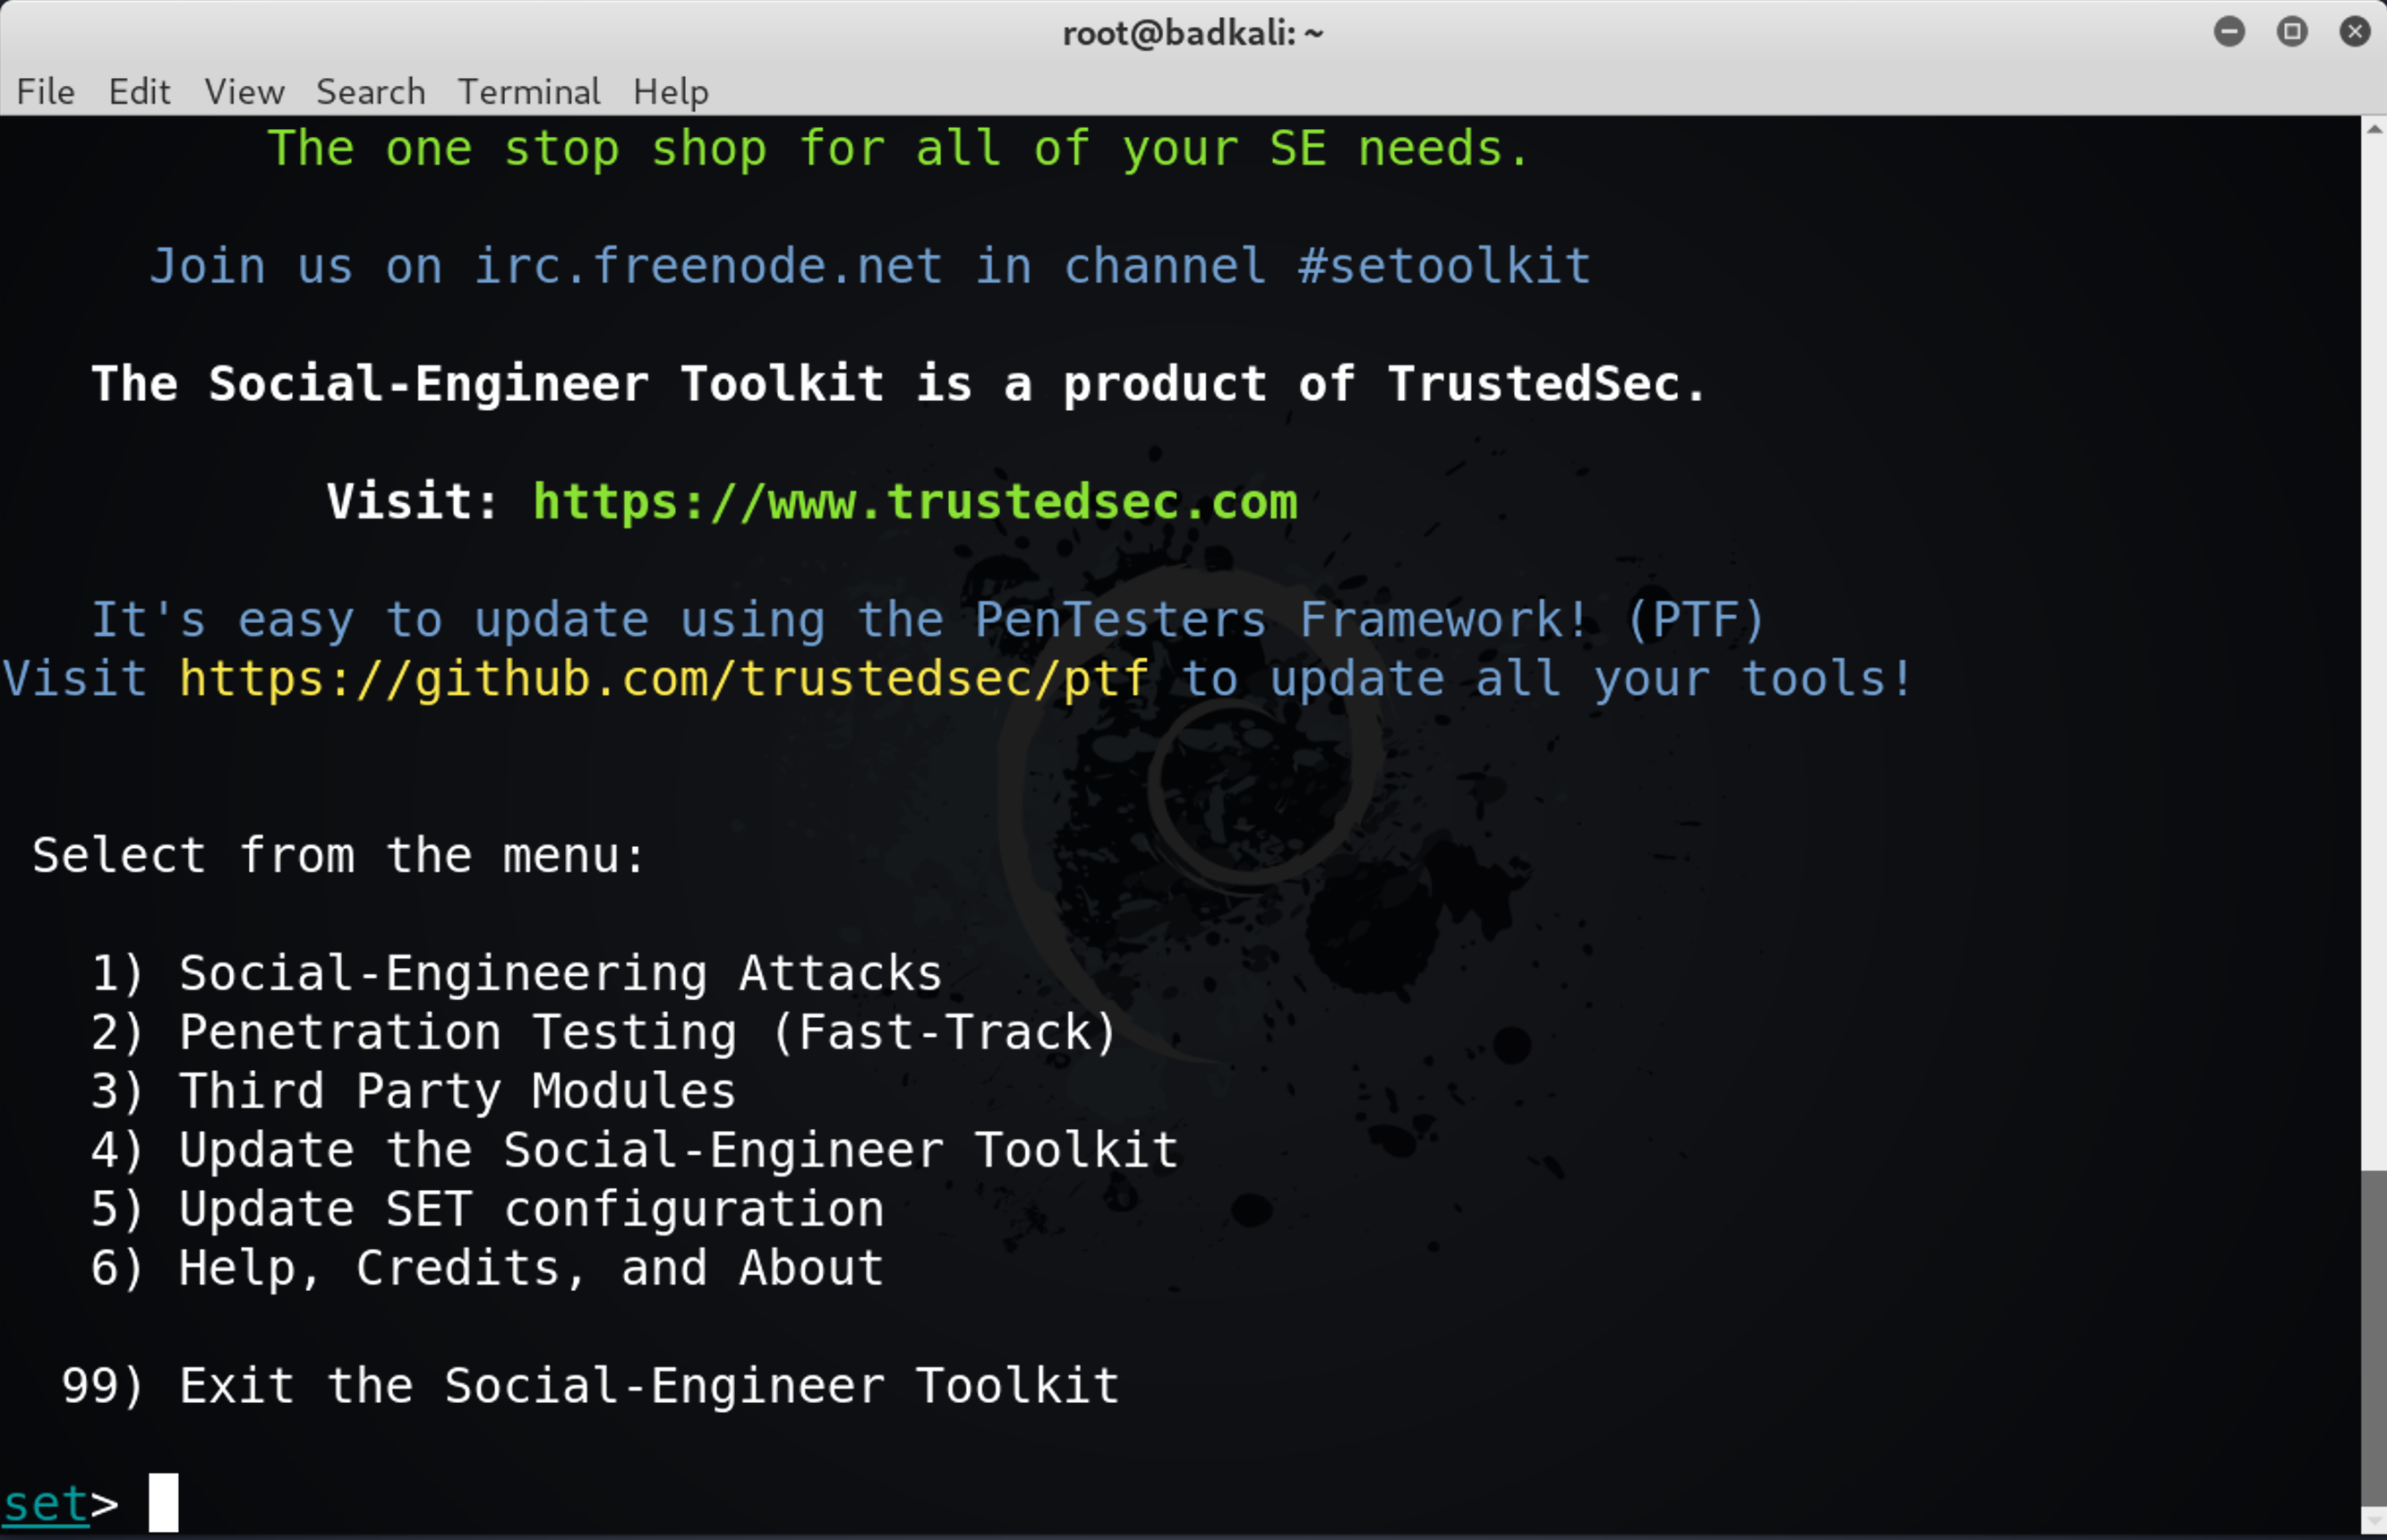 Screenshot image of advanced targeted attacks in the engineering kit